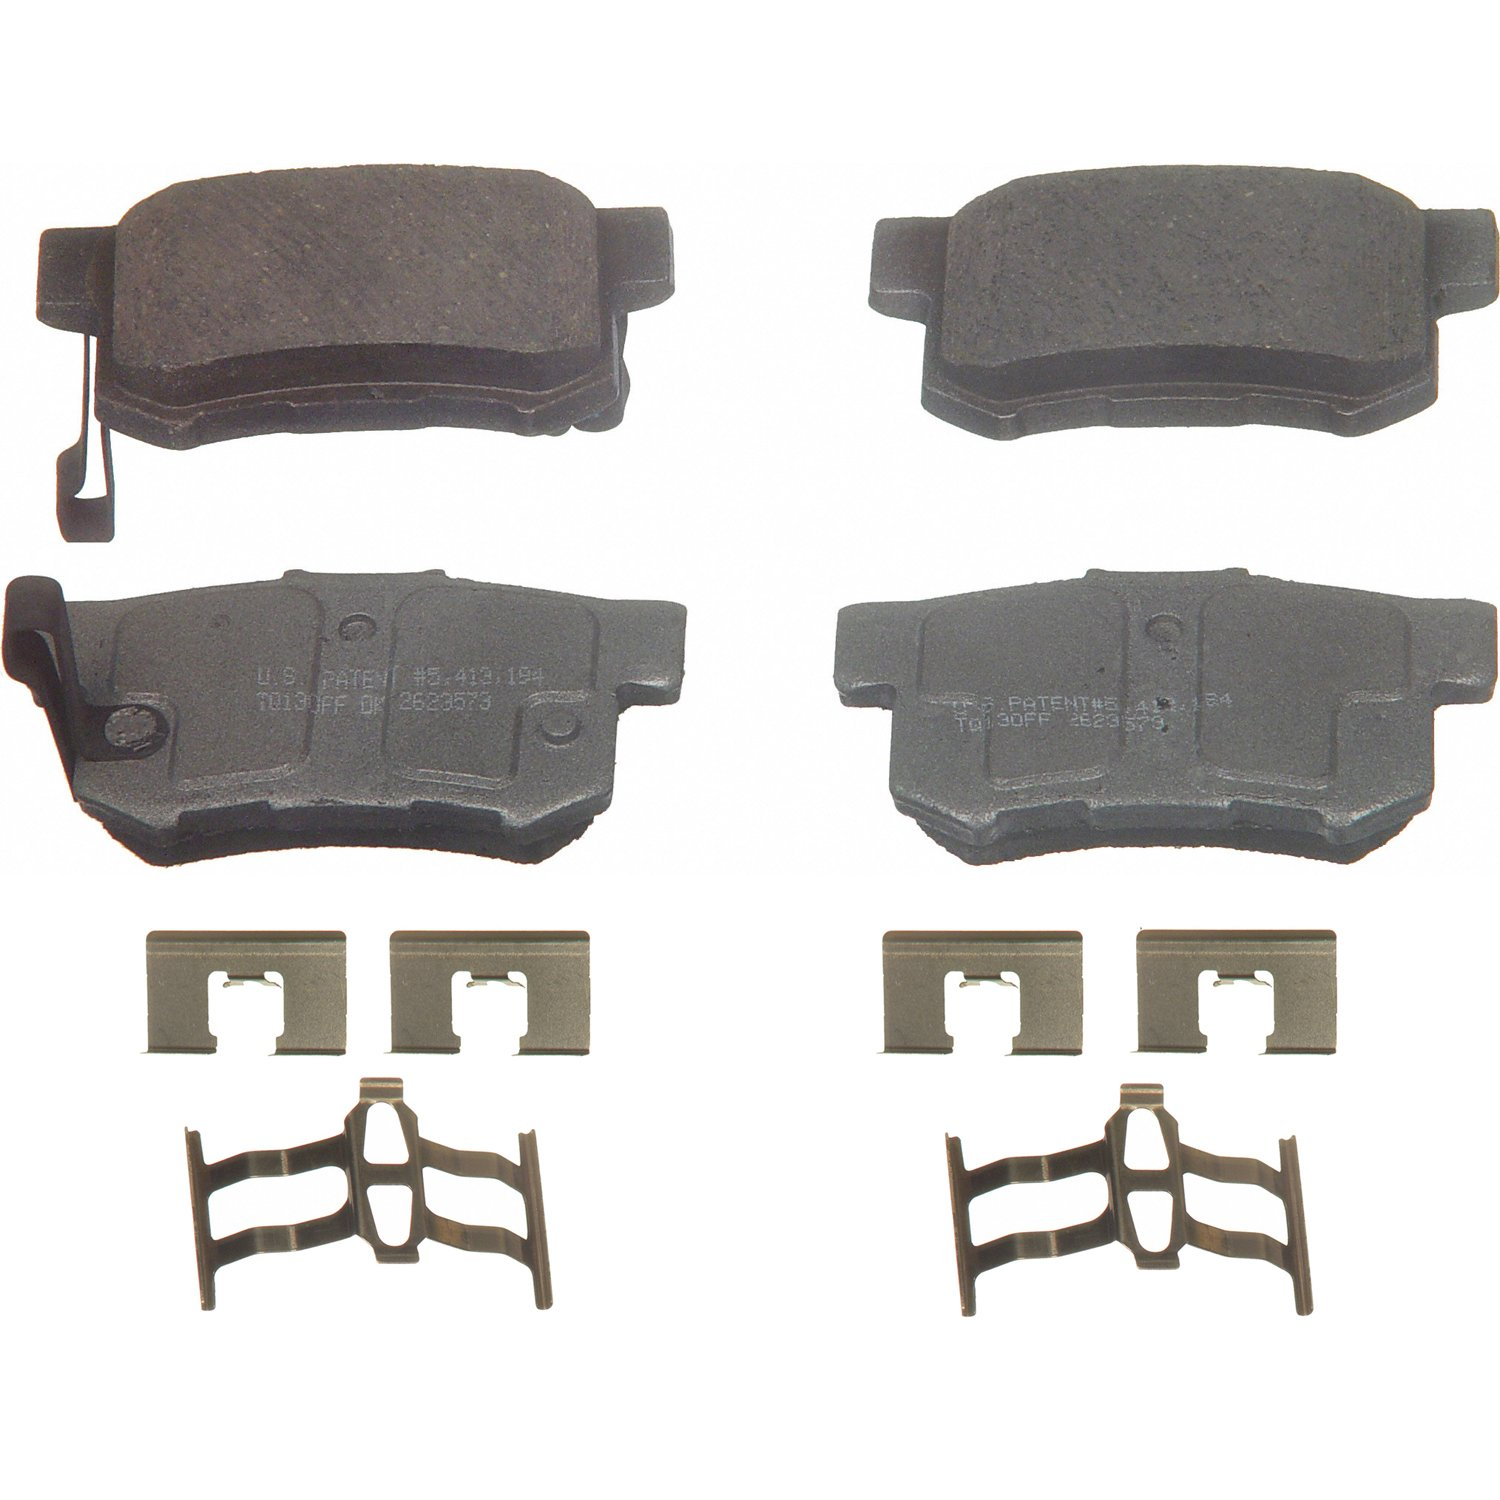 Disc Brake Pad Set-ThermoQuiet Disc Brake Pad Front Wagner QC363A